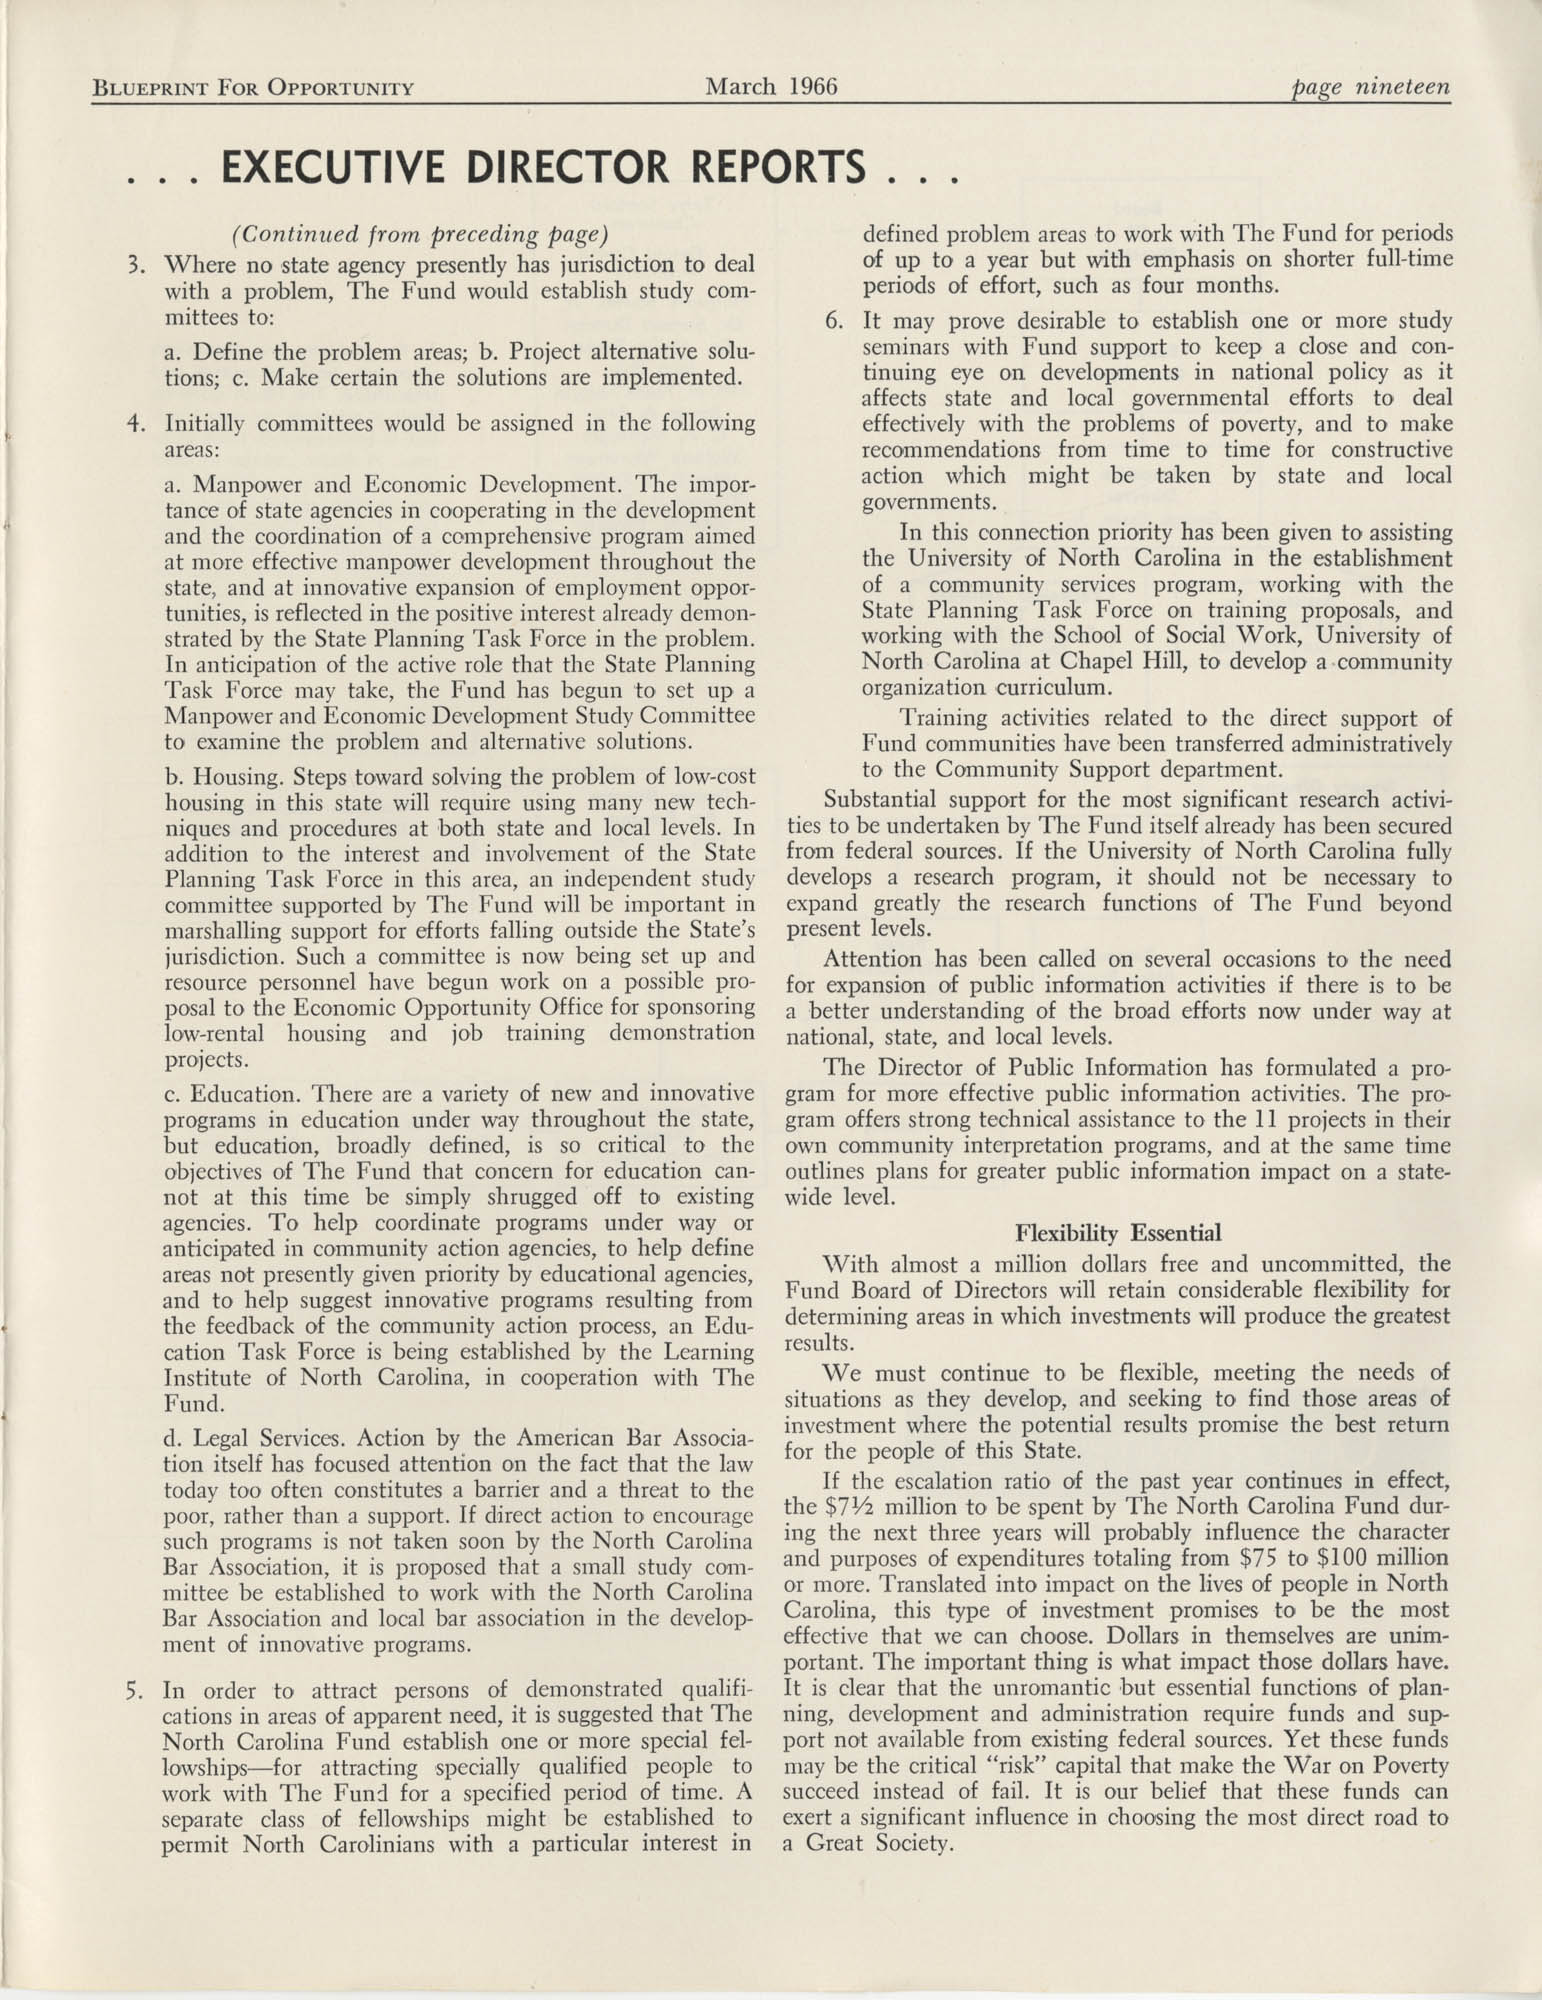 Blueprint for Opportunity, Vol. 2, No. 1, Page 19